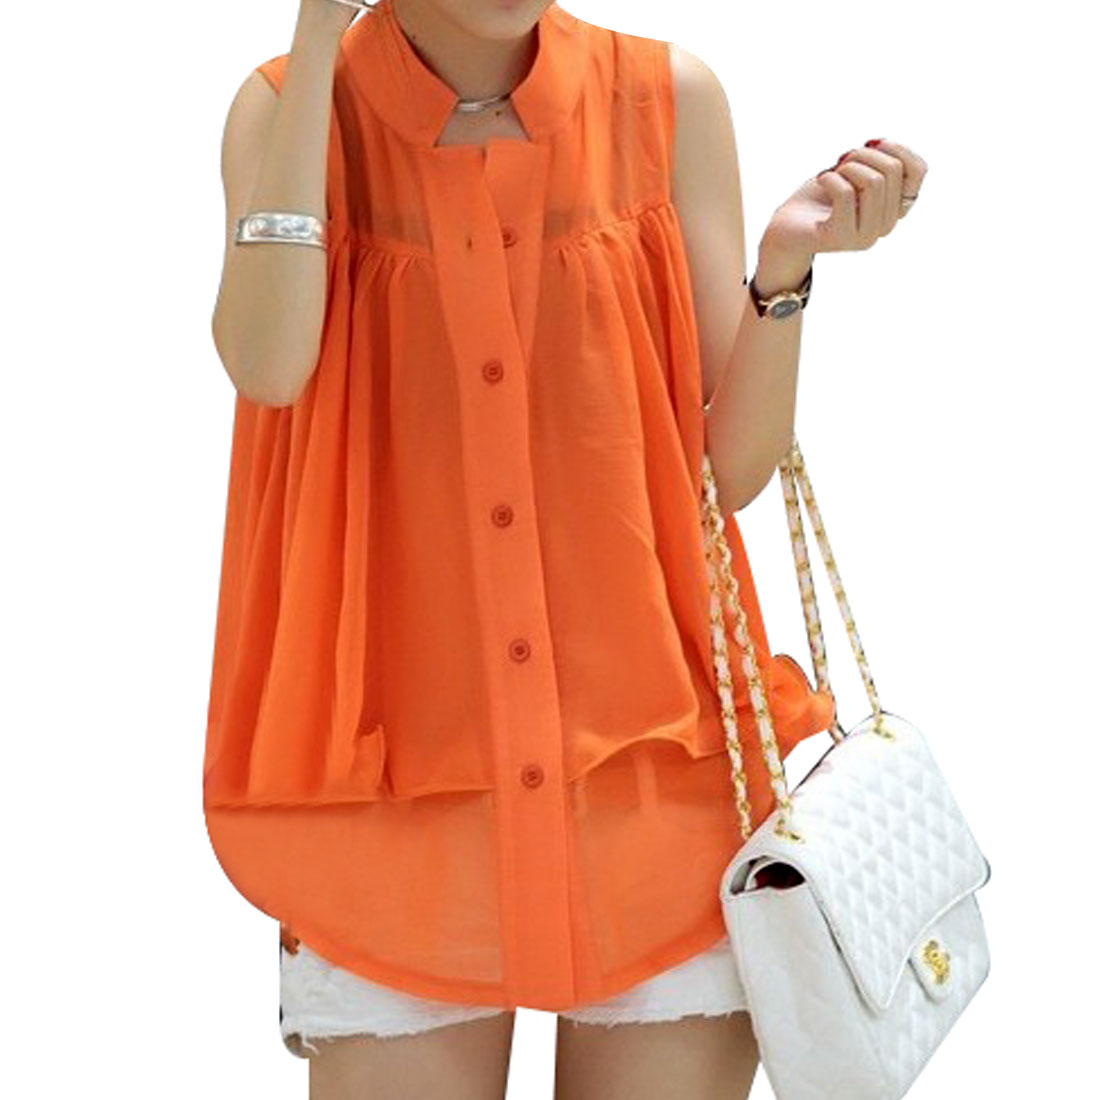 Single Breasted Two Layers Bright Orange Chiffon Vest XS for Ladies